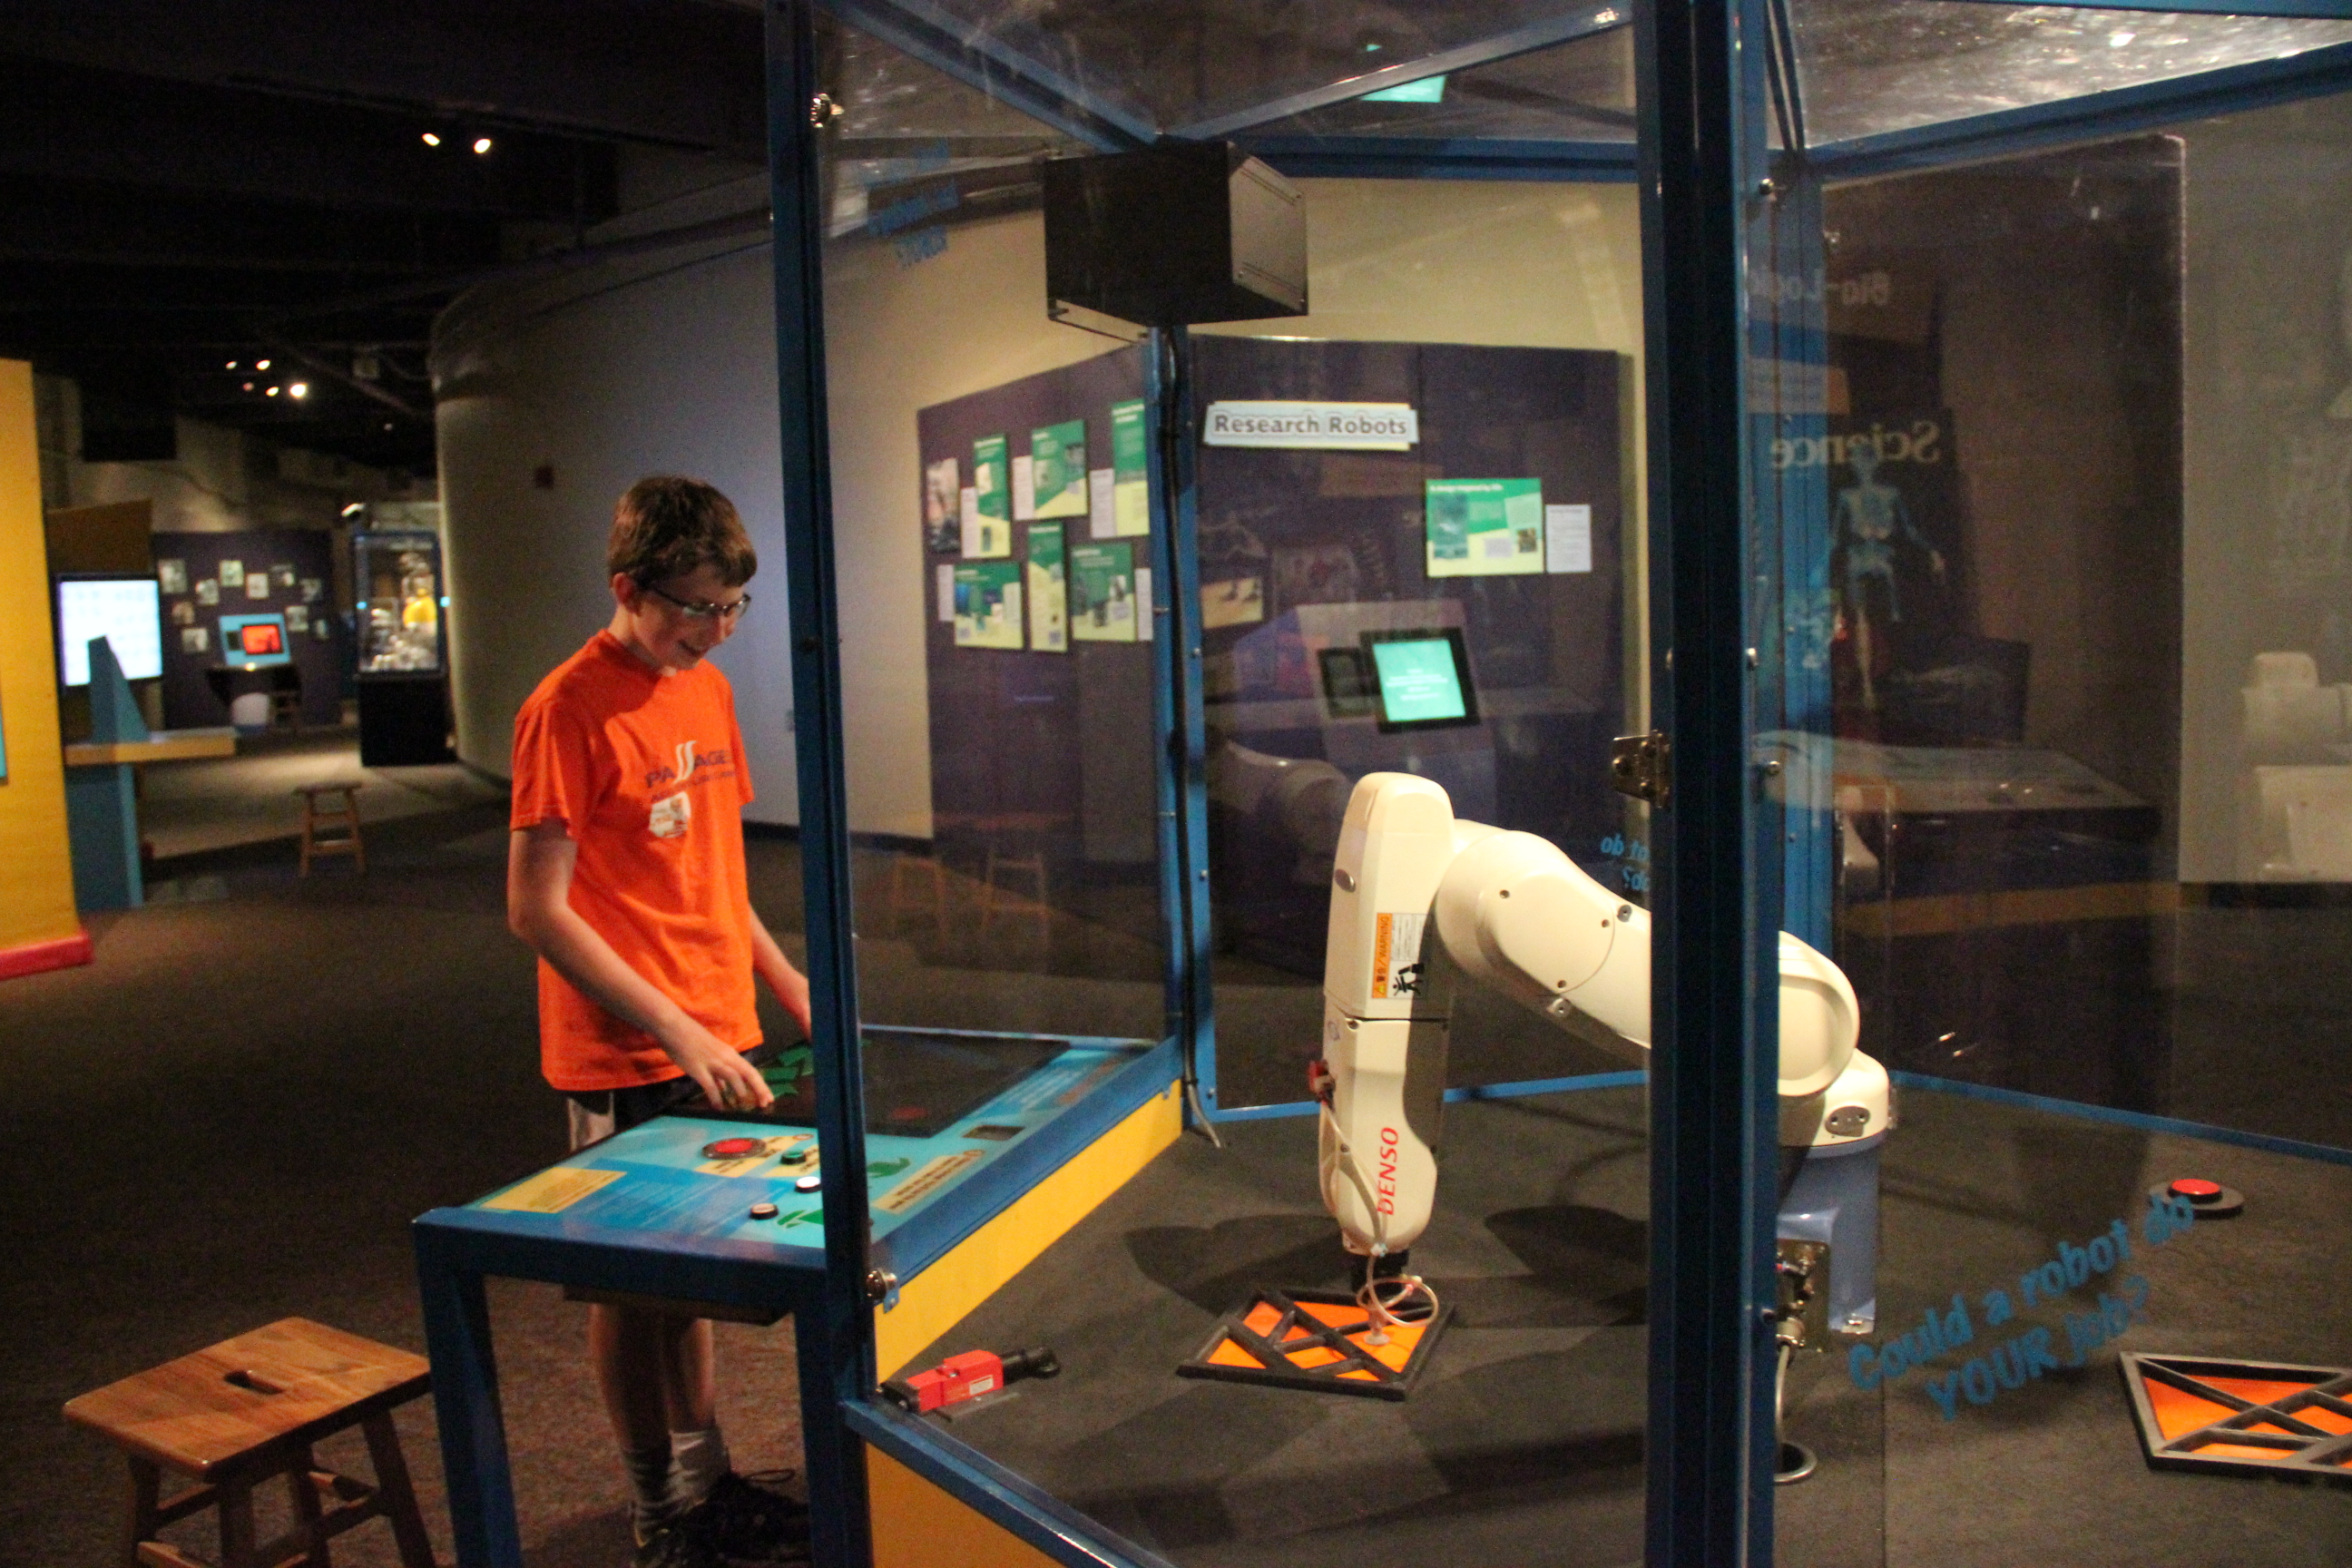 Robots + Us Is Informative, Interactive, And Fun!